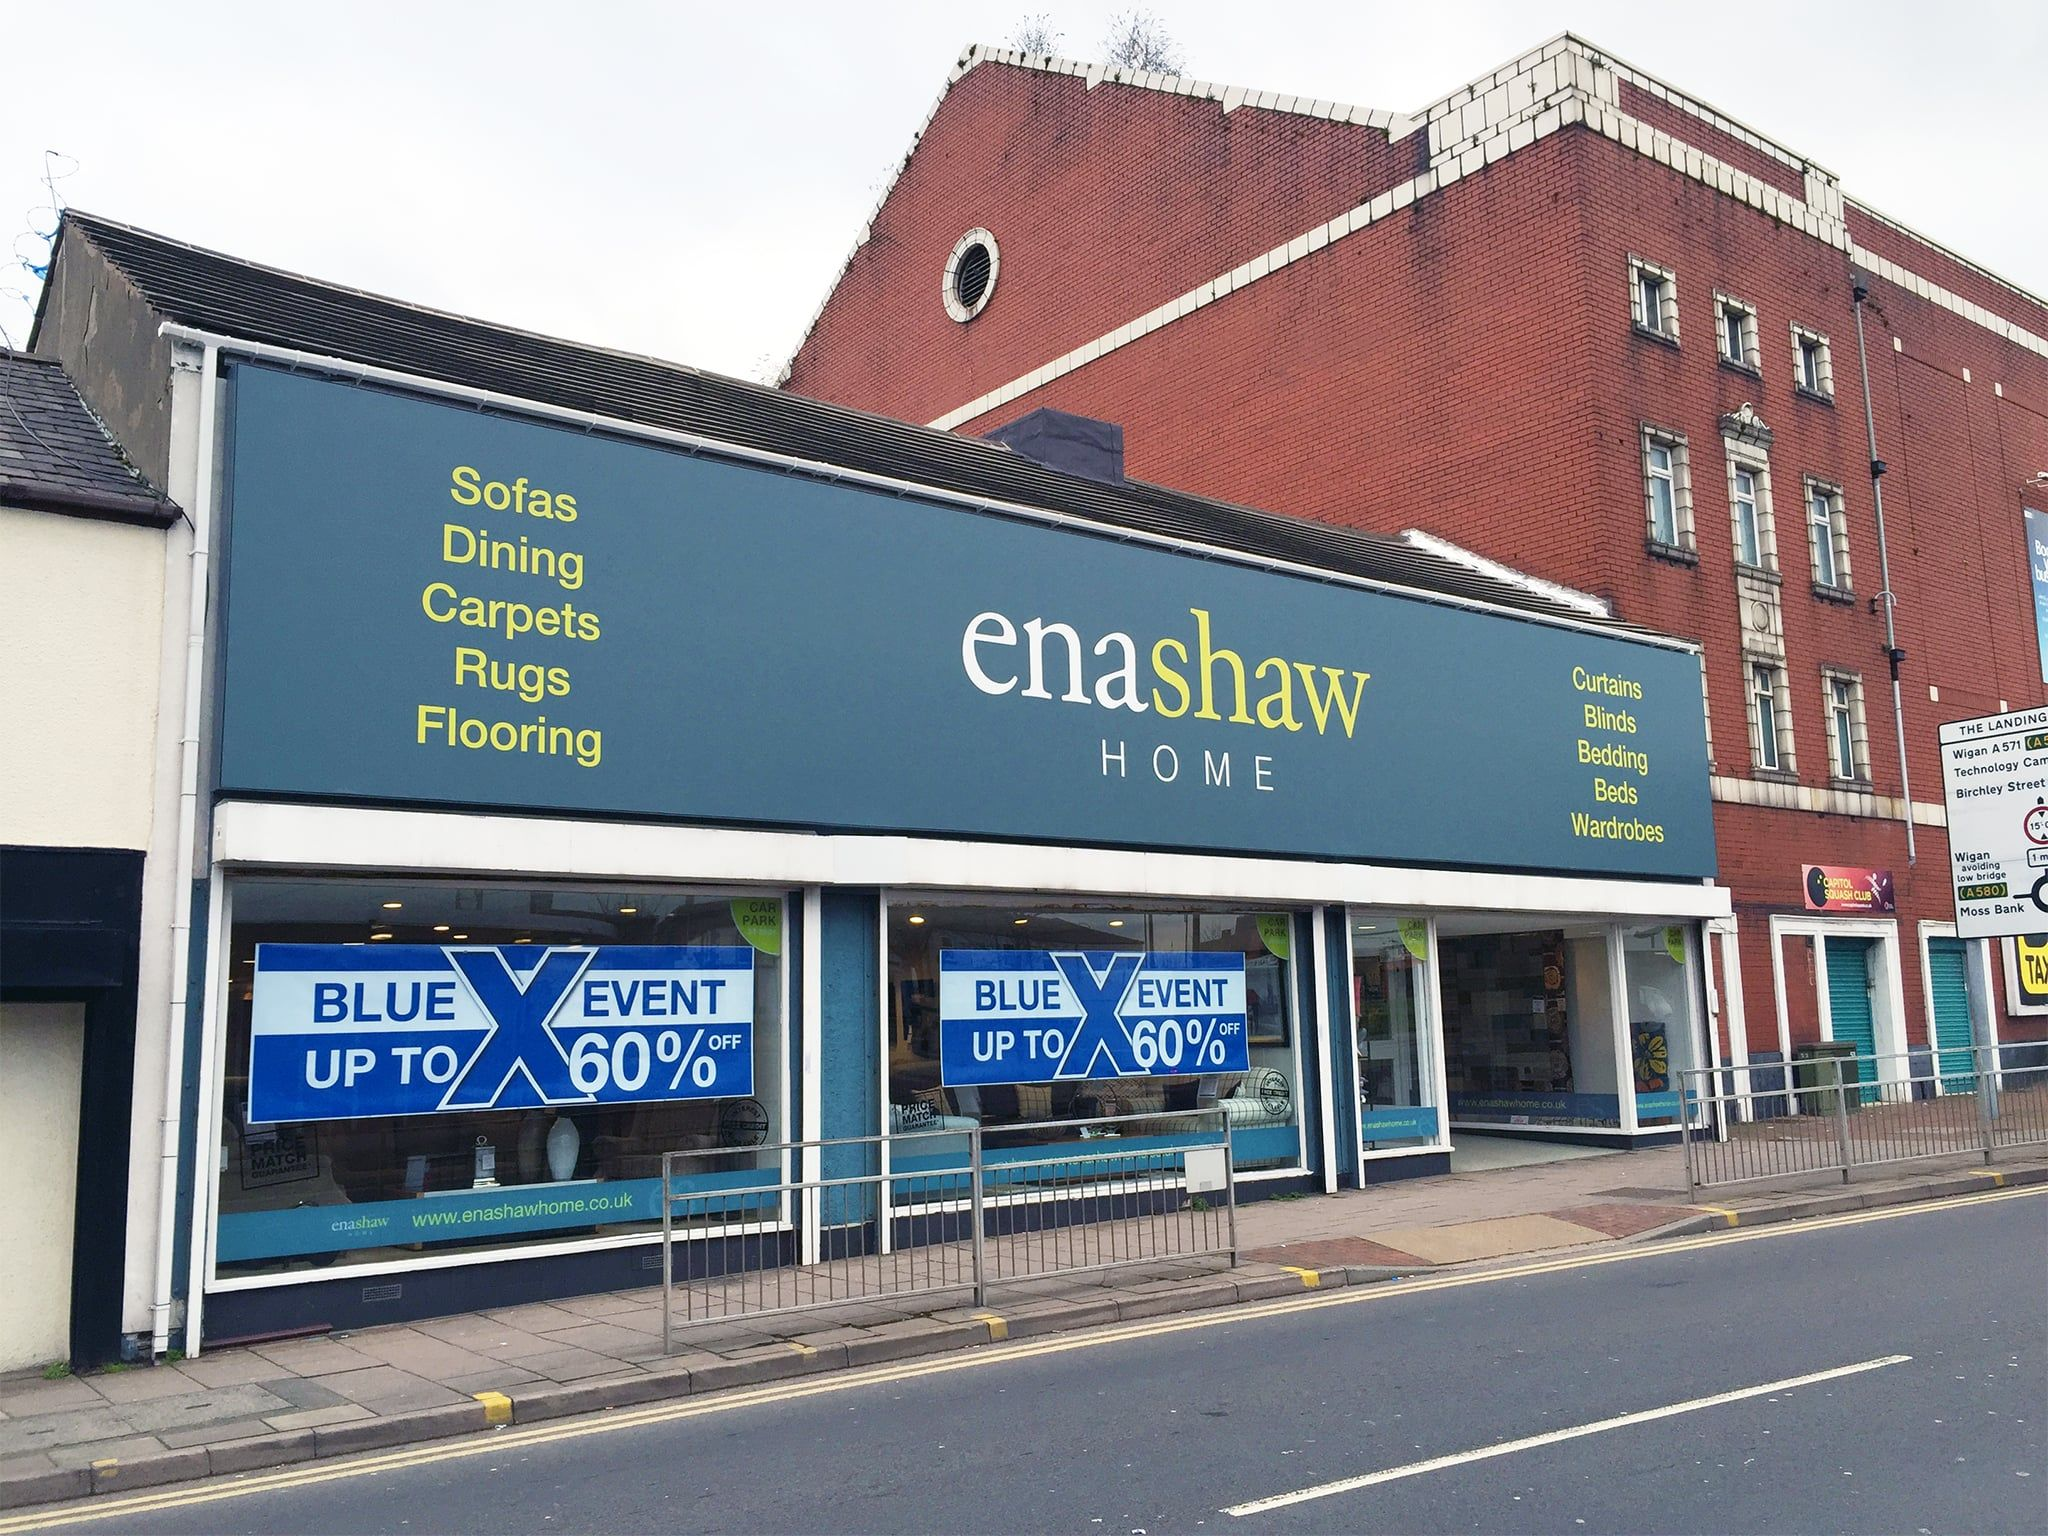 Enshaw Home signage manchester